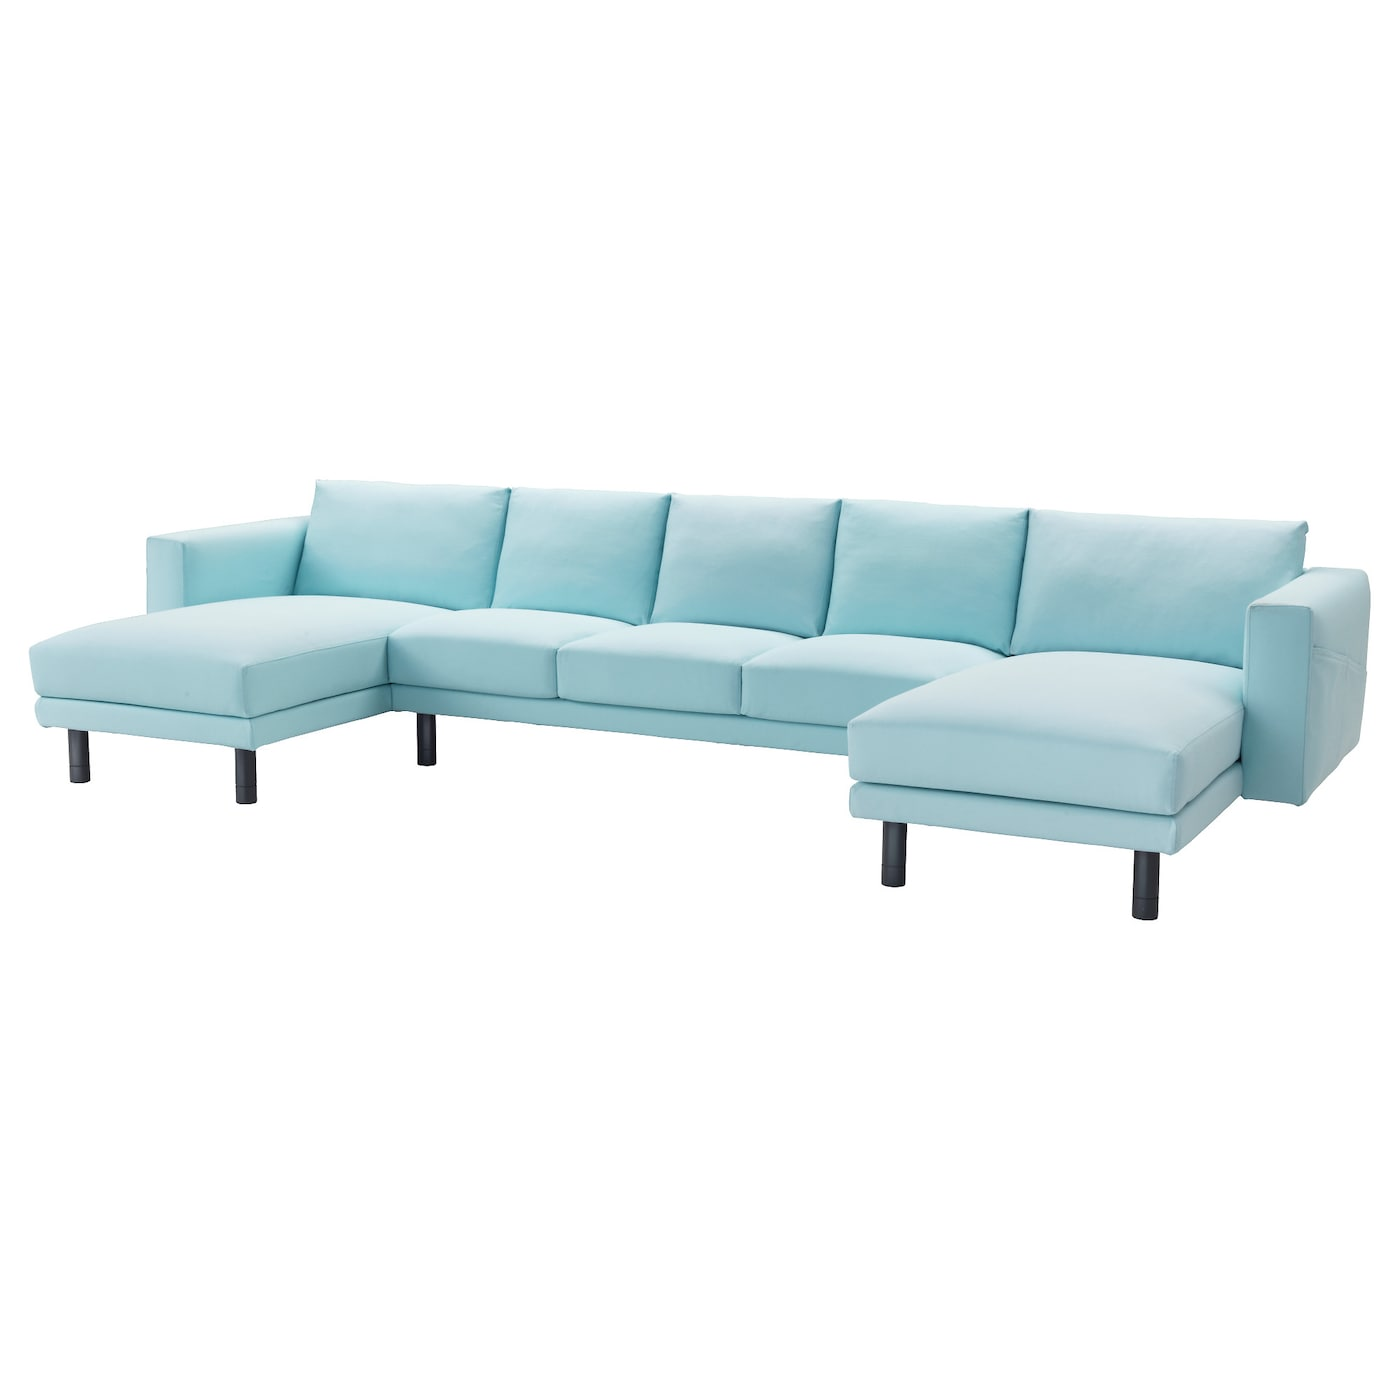 Modular sectional sofas ikea ireland for 2 5 seater chaise